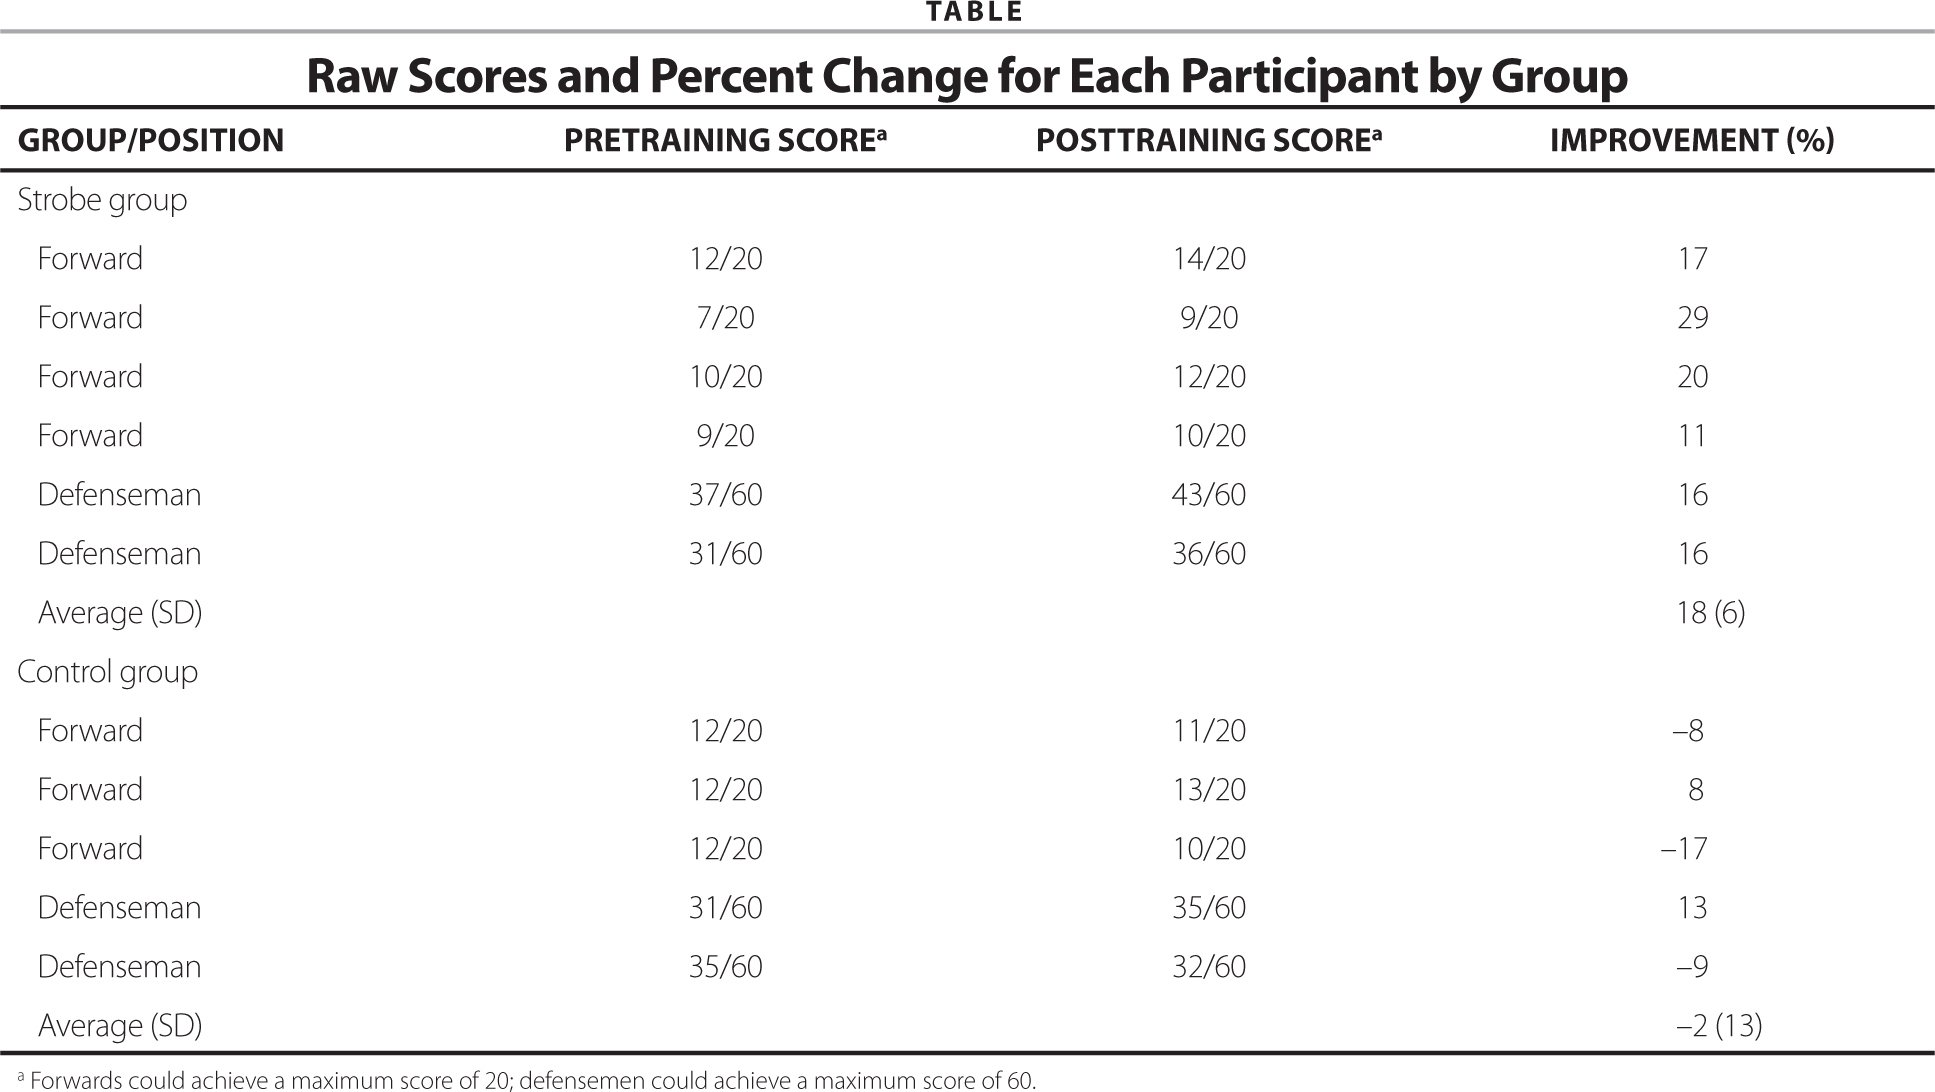 Raw Scores and Percent Change for Each Participant by Group